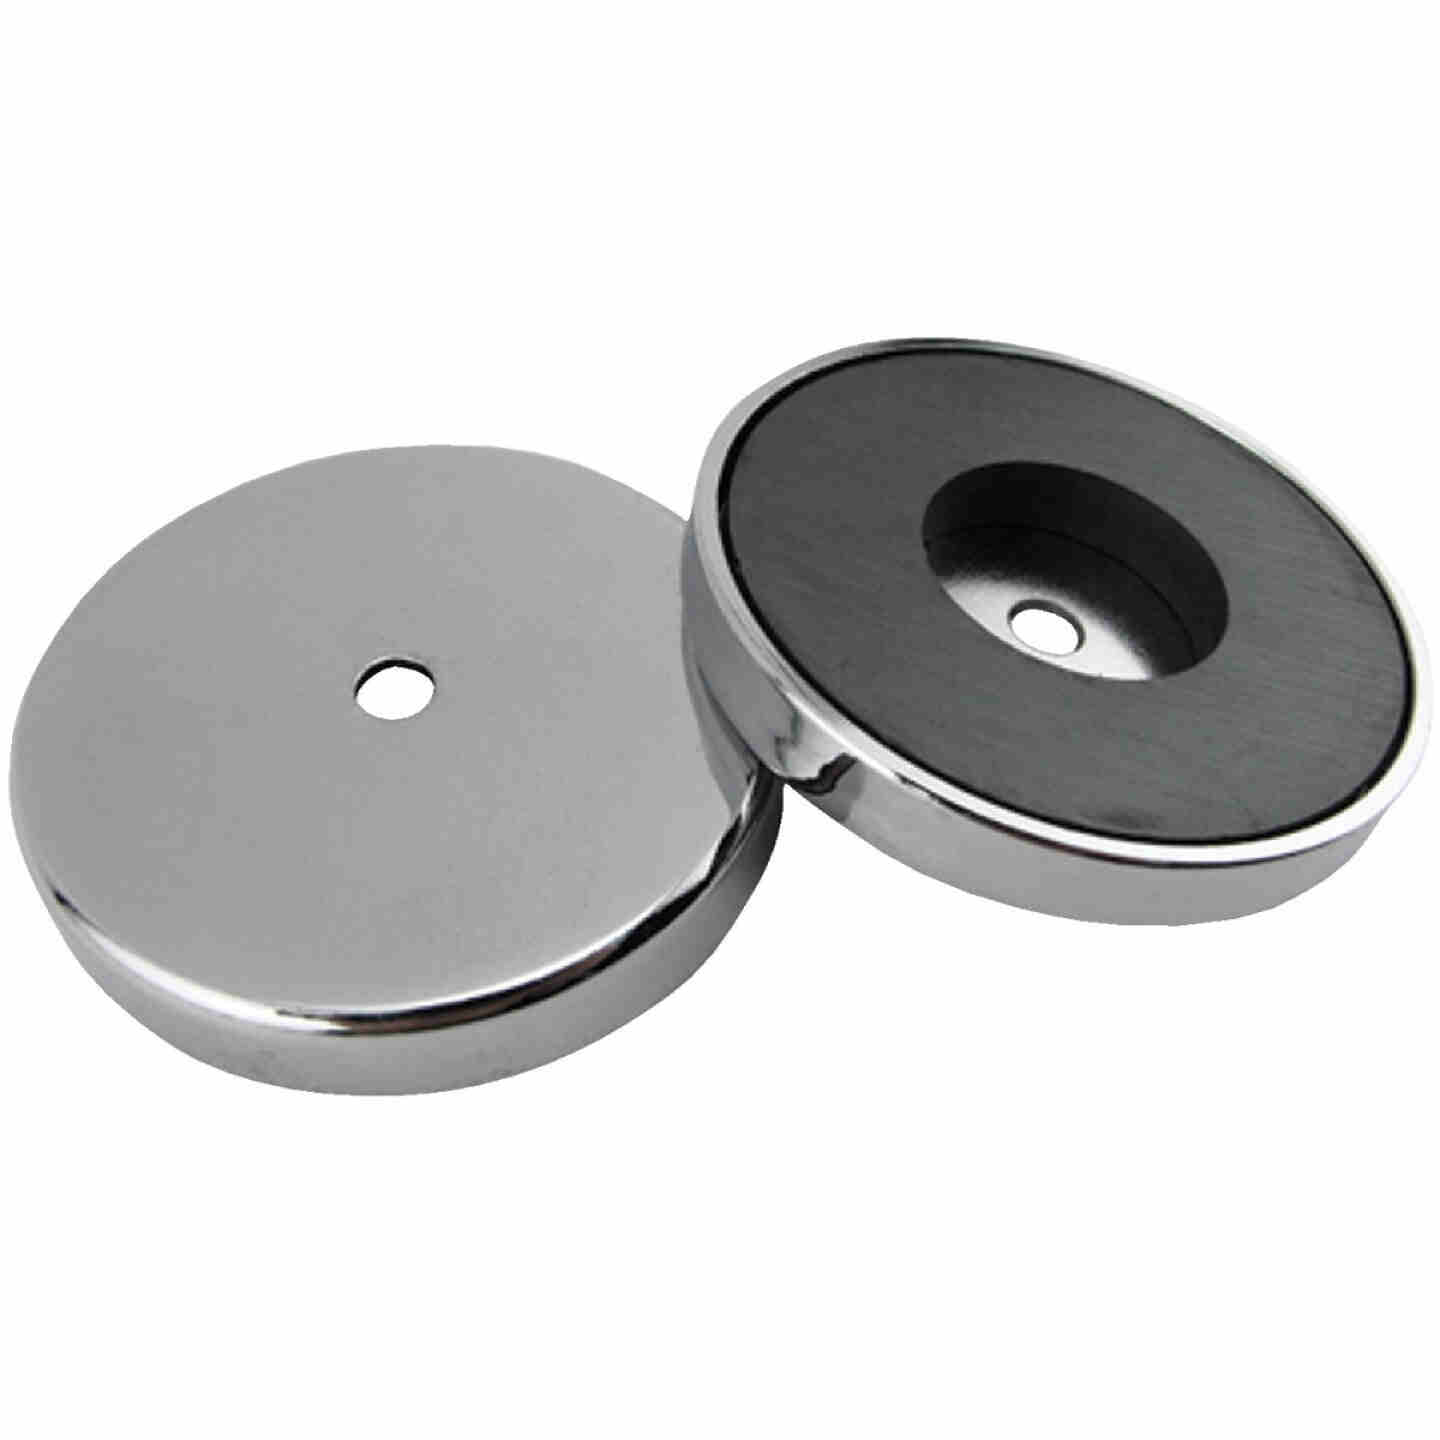 Master Magnetics 2-5/8 in. 65 Lb. Magnetic Base Image 1